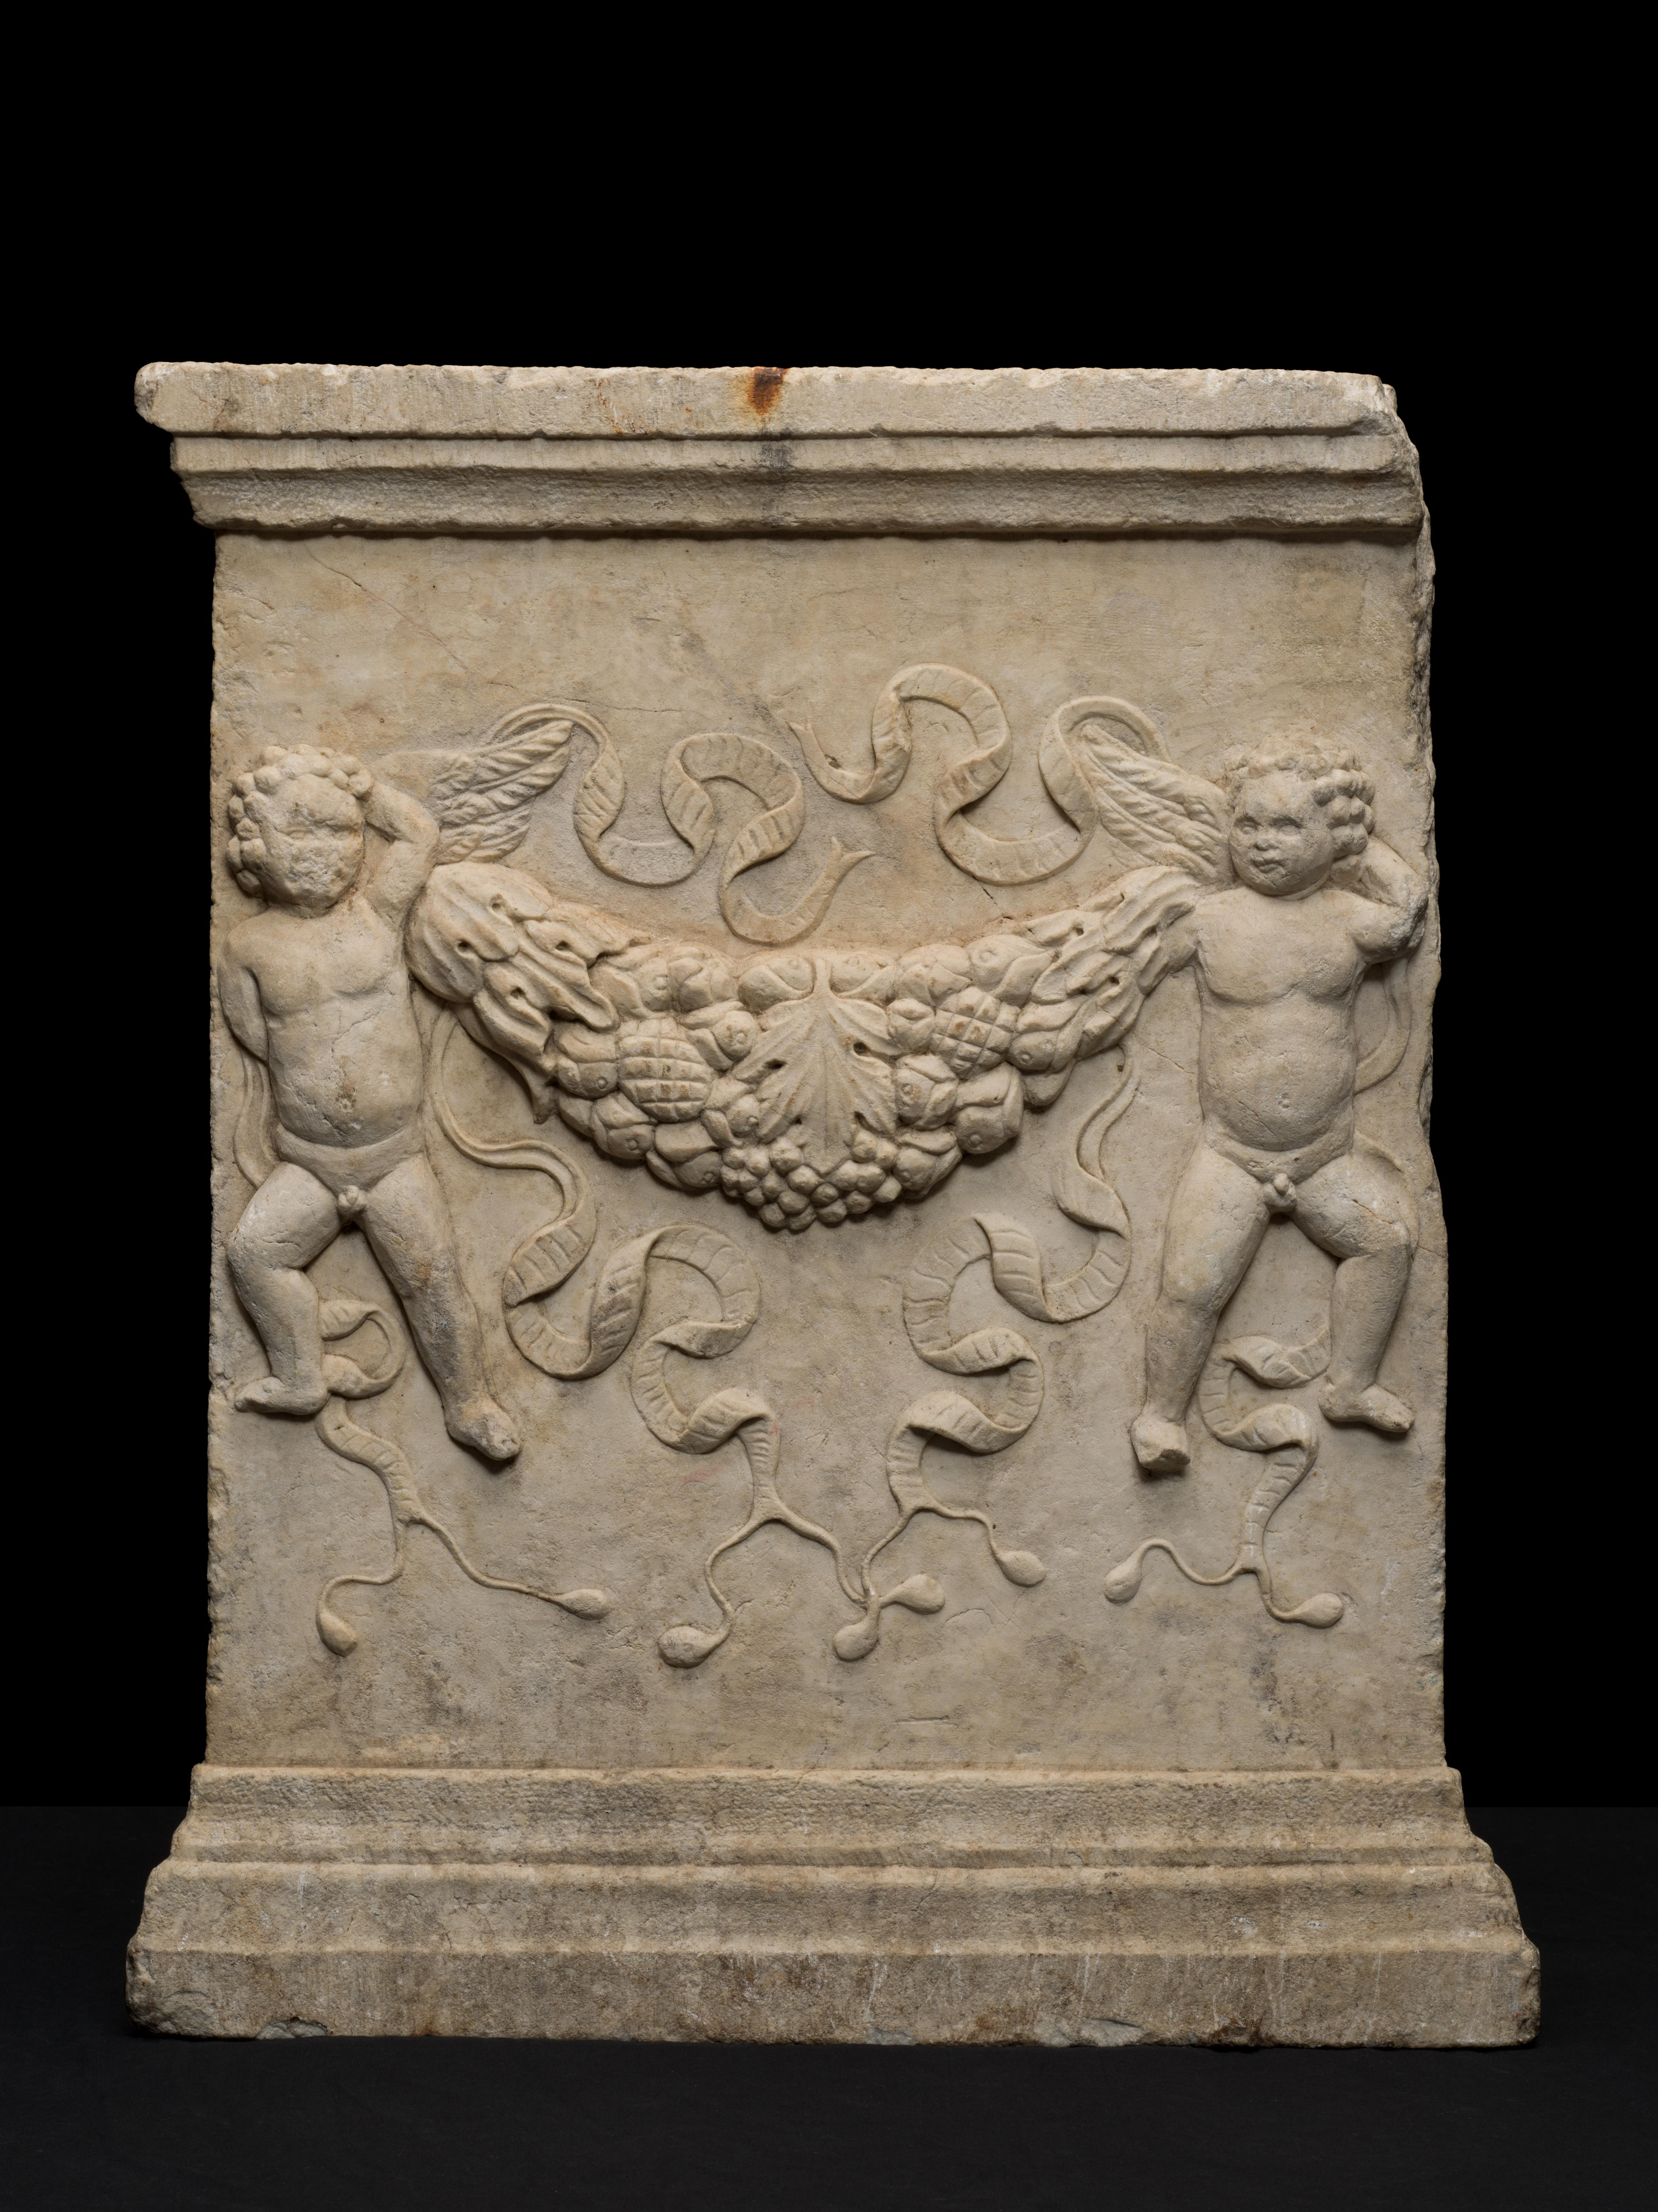 Italian Marble Relief with Putti Holding Garlands 16th Century